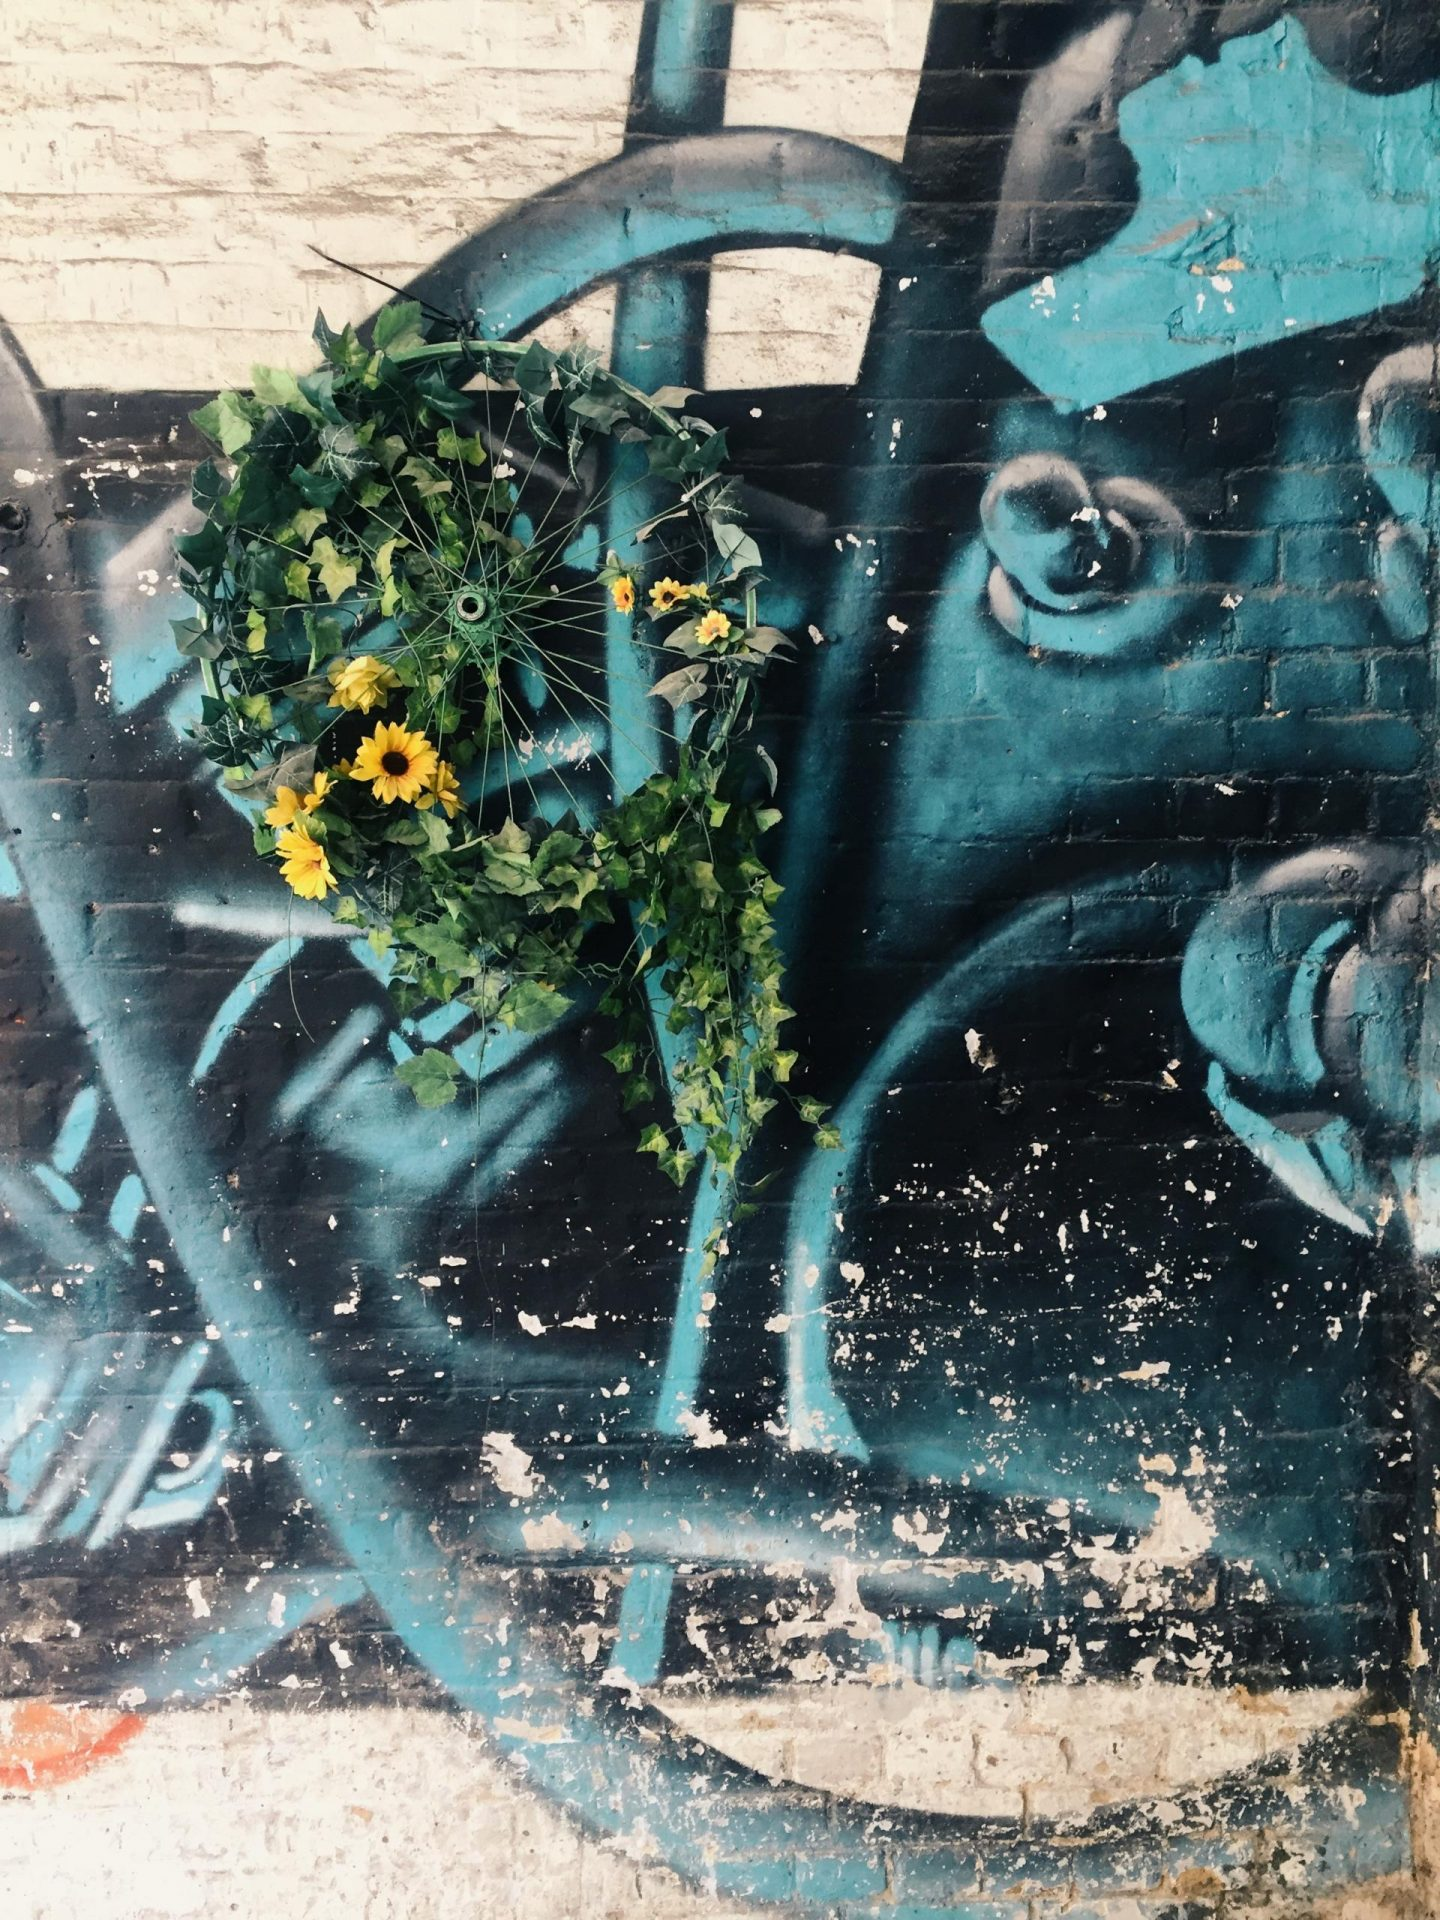 flowers and graff